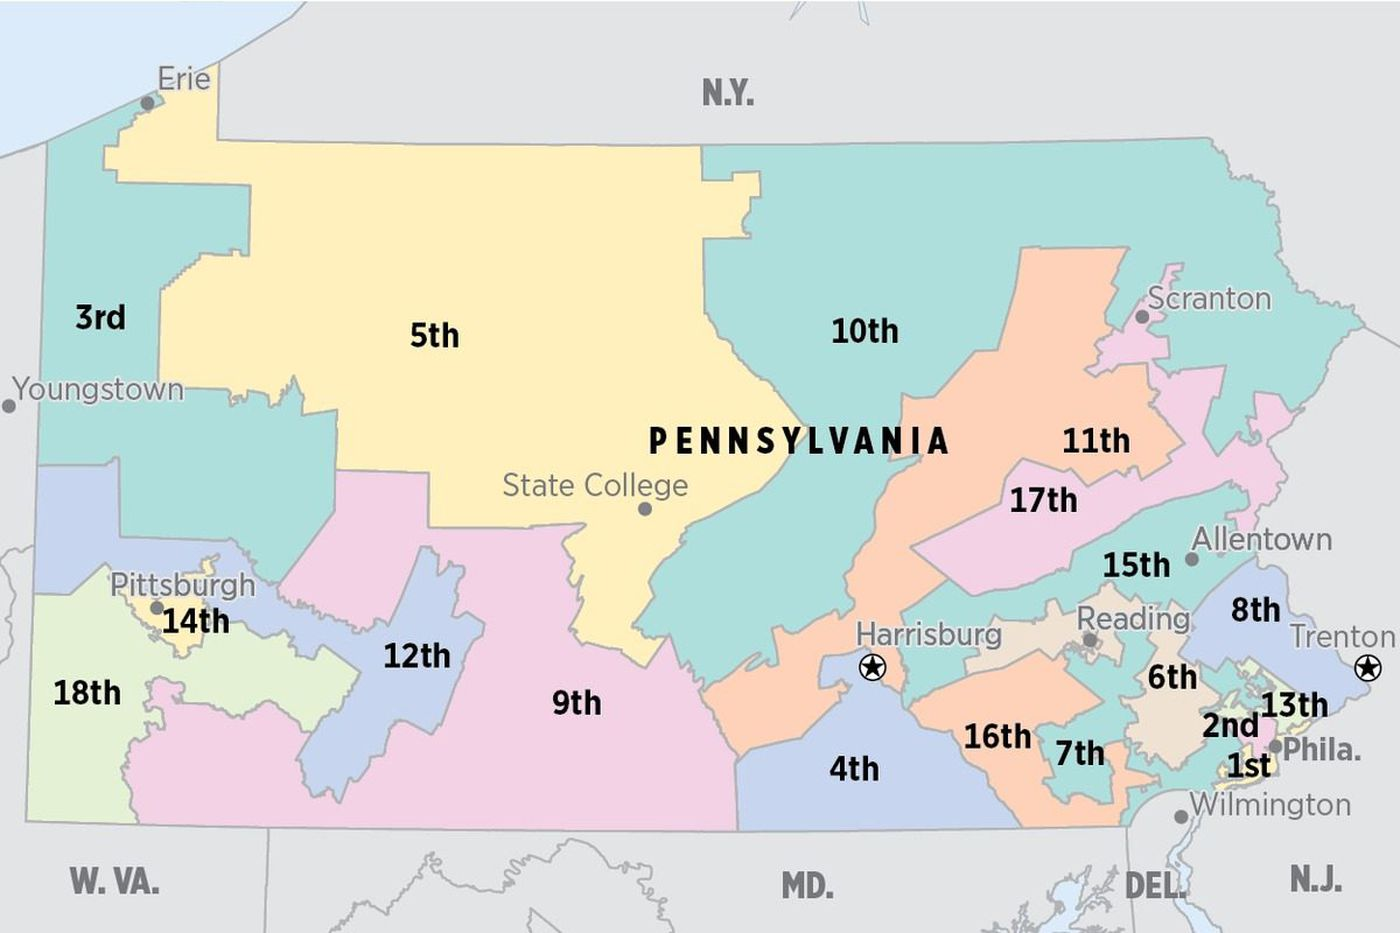 Pa. Supreme Court considers ordering new congressional map before 2018 elections